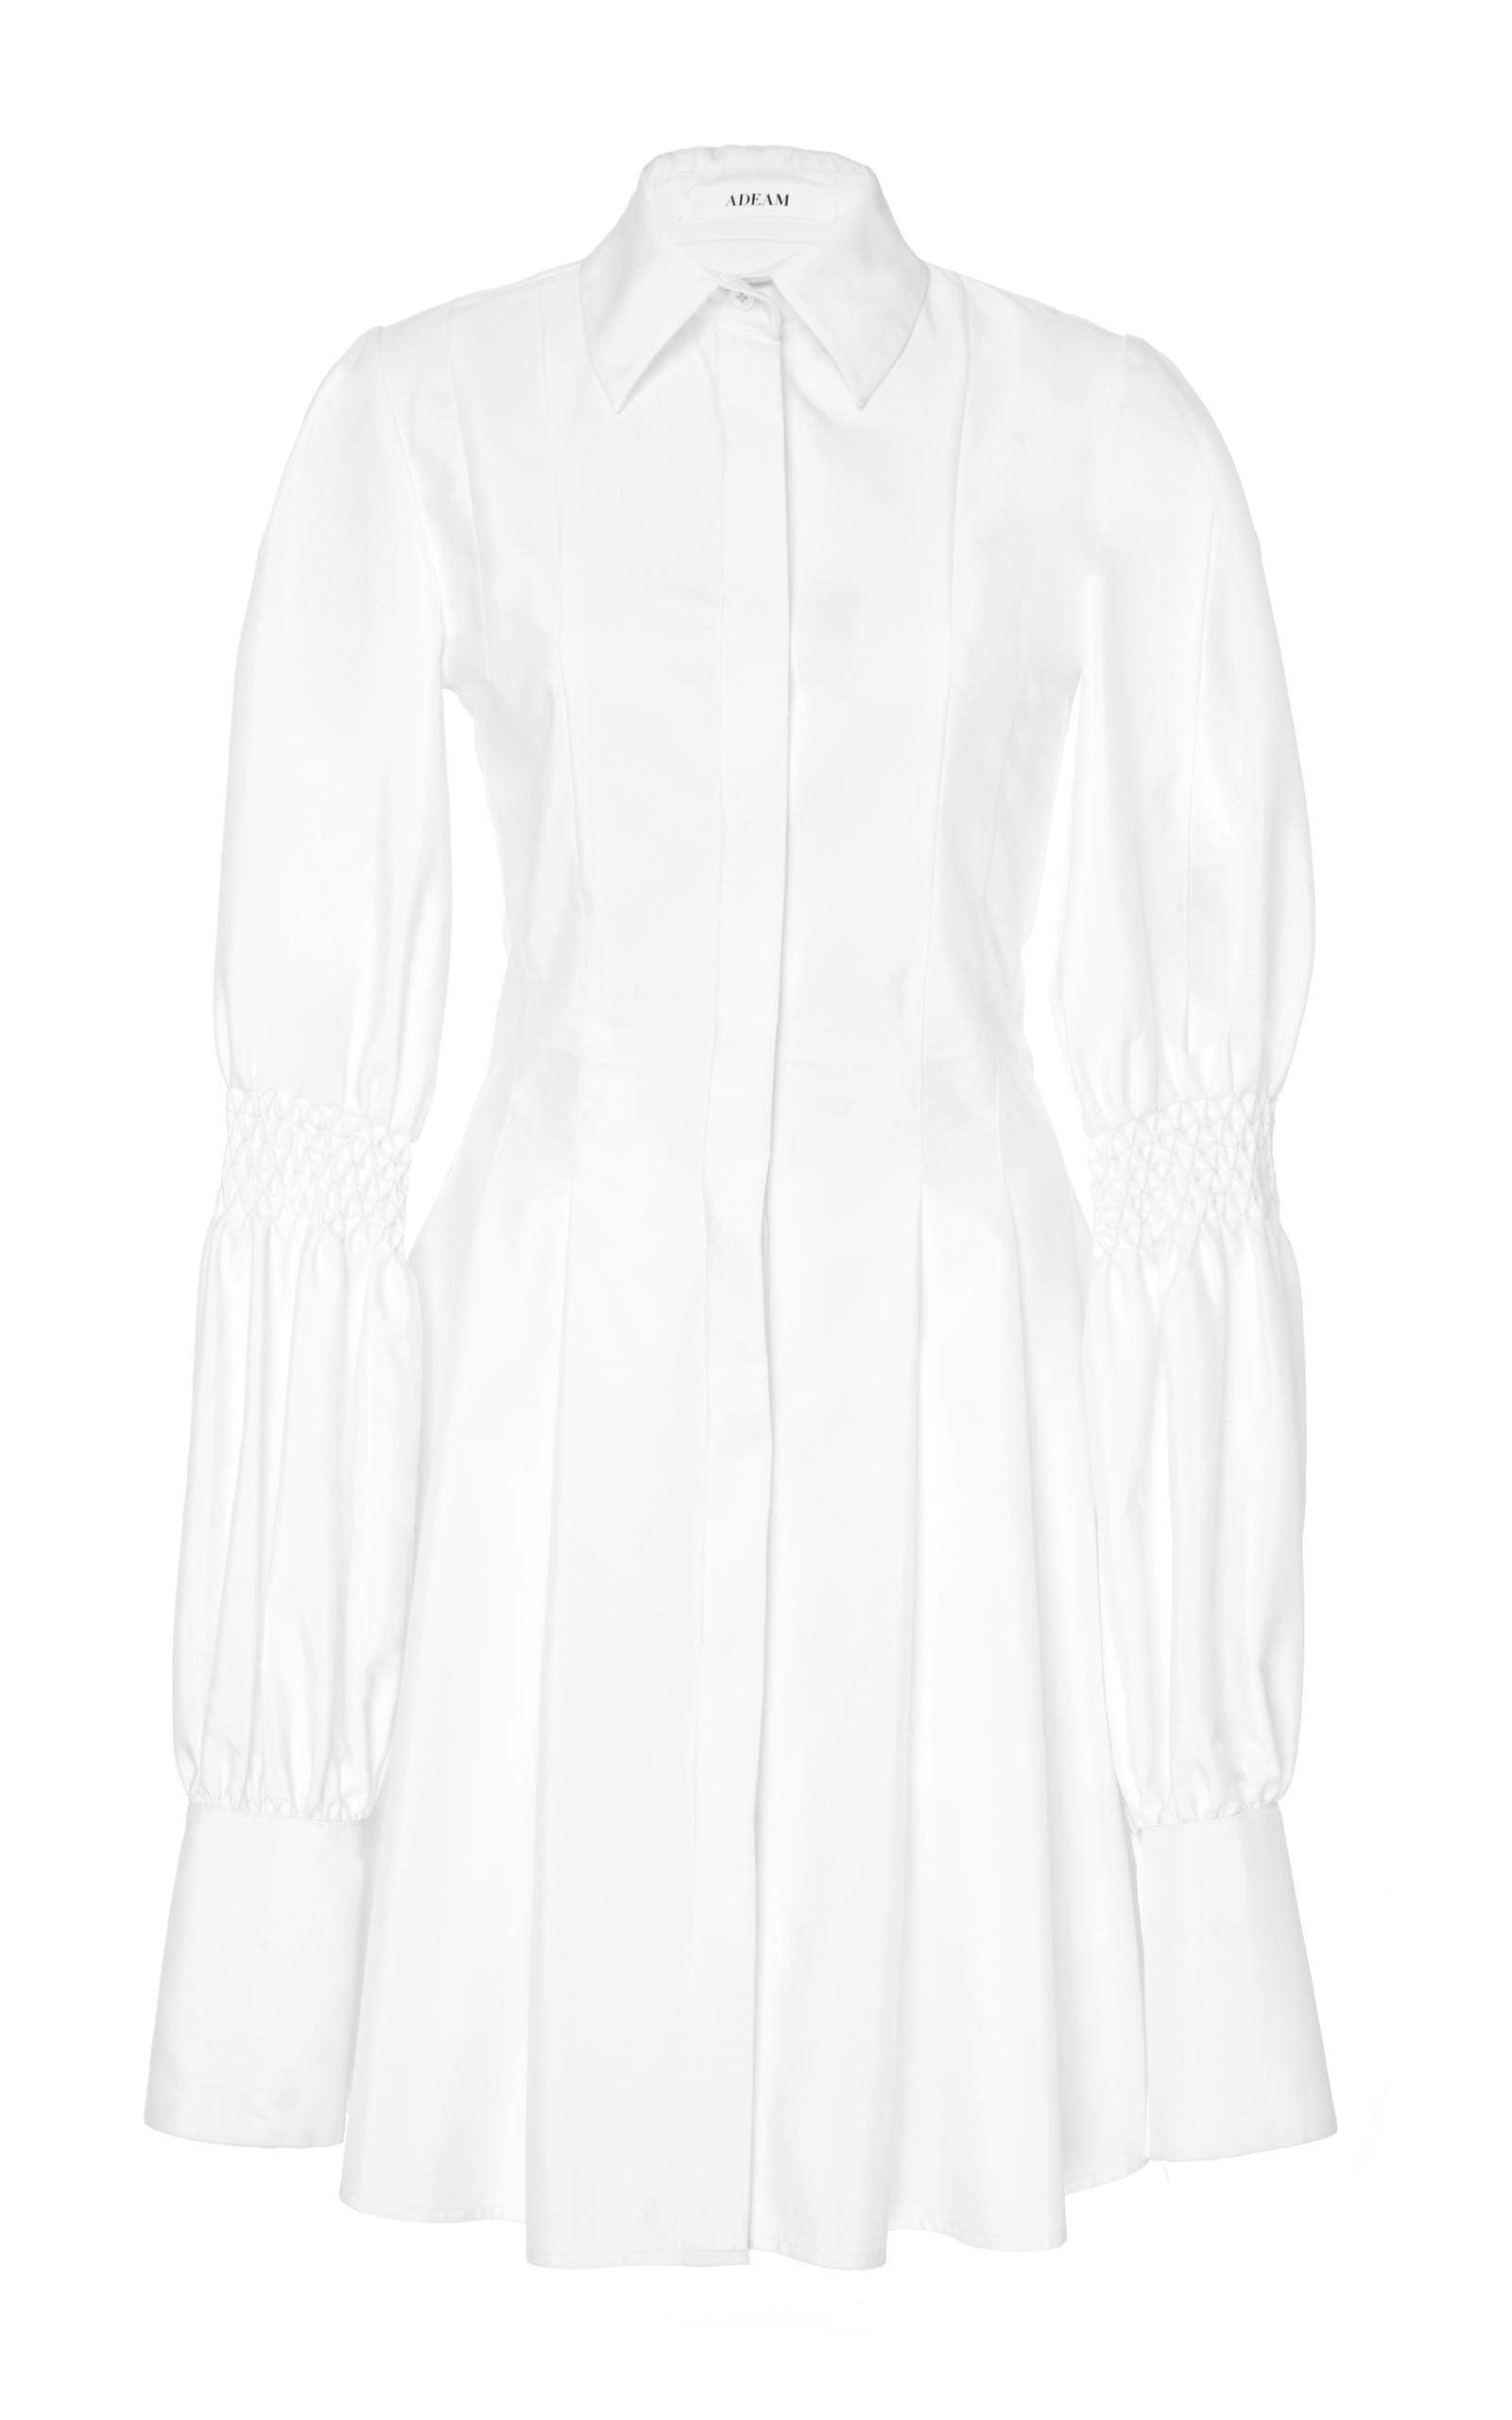 Adeam Pleated Shirt Dress With Smocking Detail In White